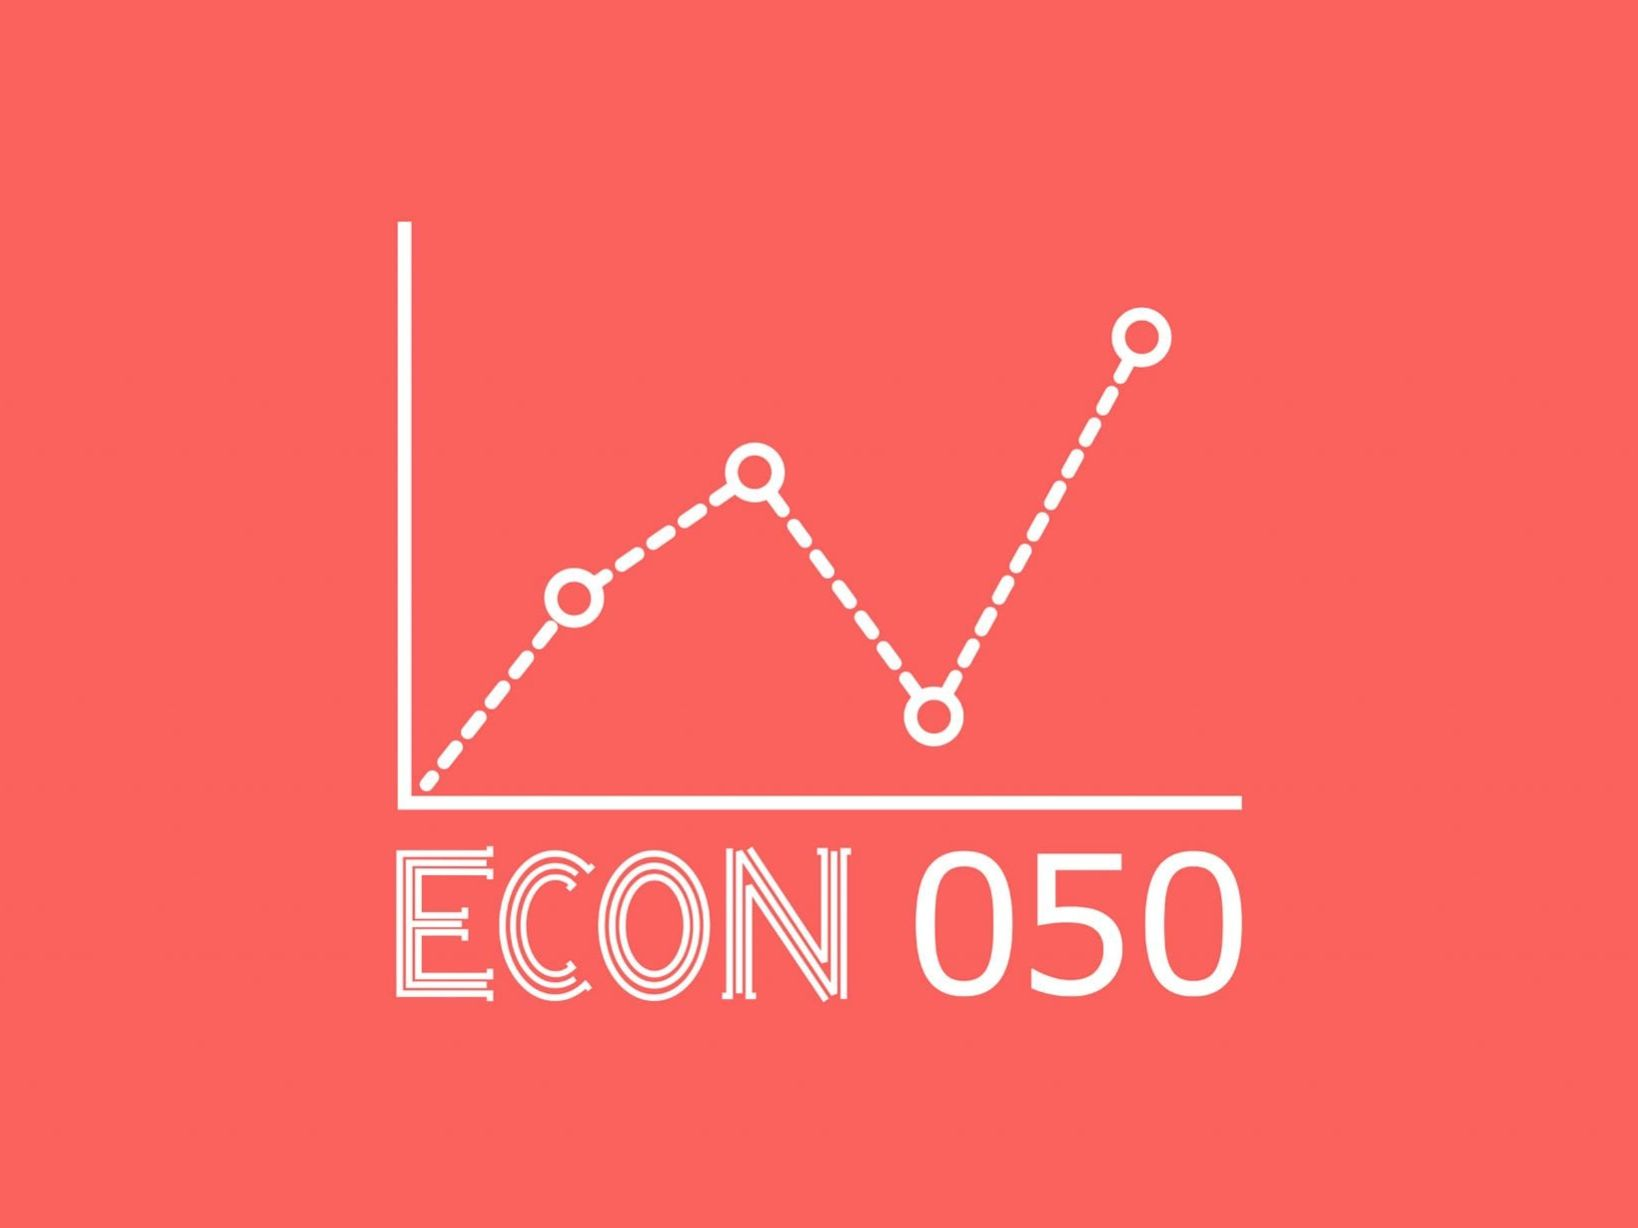 Econ 050 is a podcast on economics and business made by the Faculty of Economics and Business in collaboration with the Northern Times.